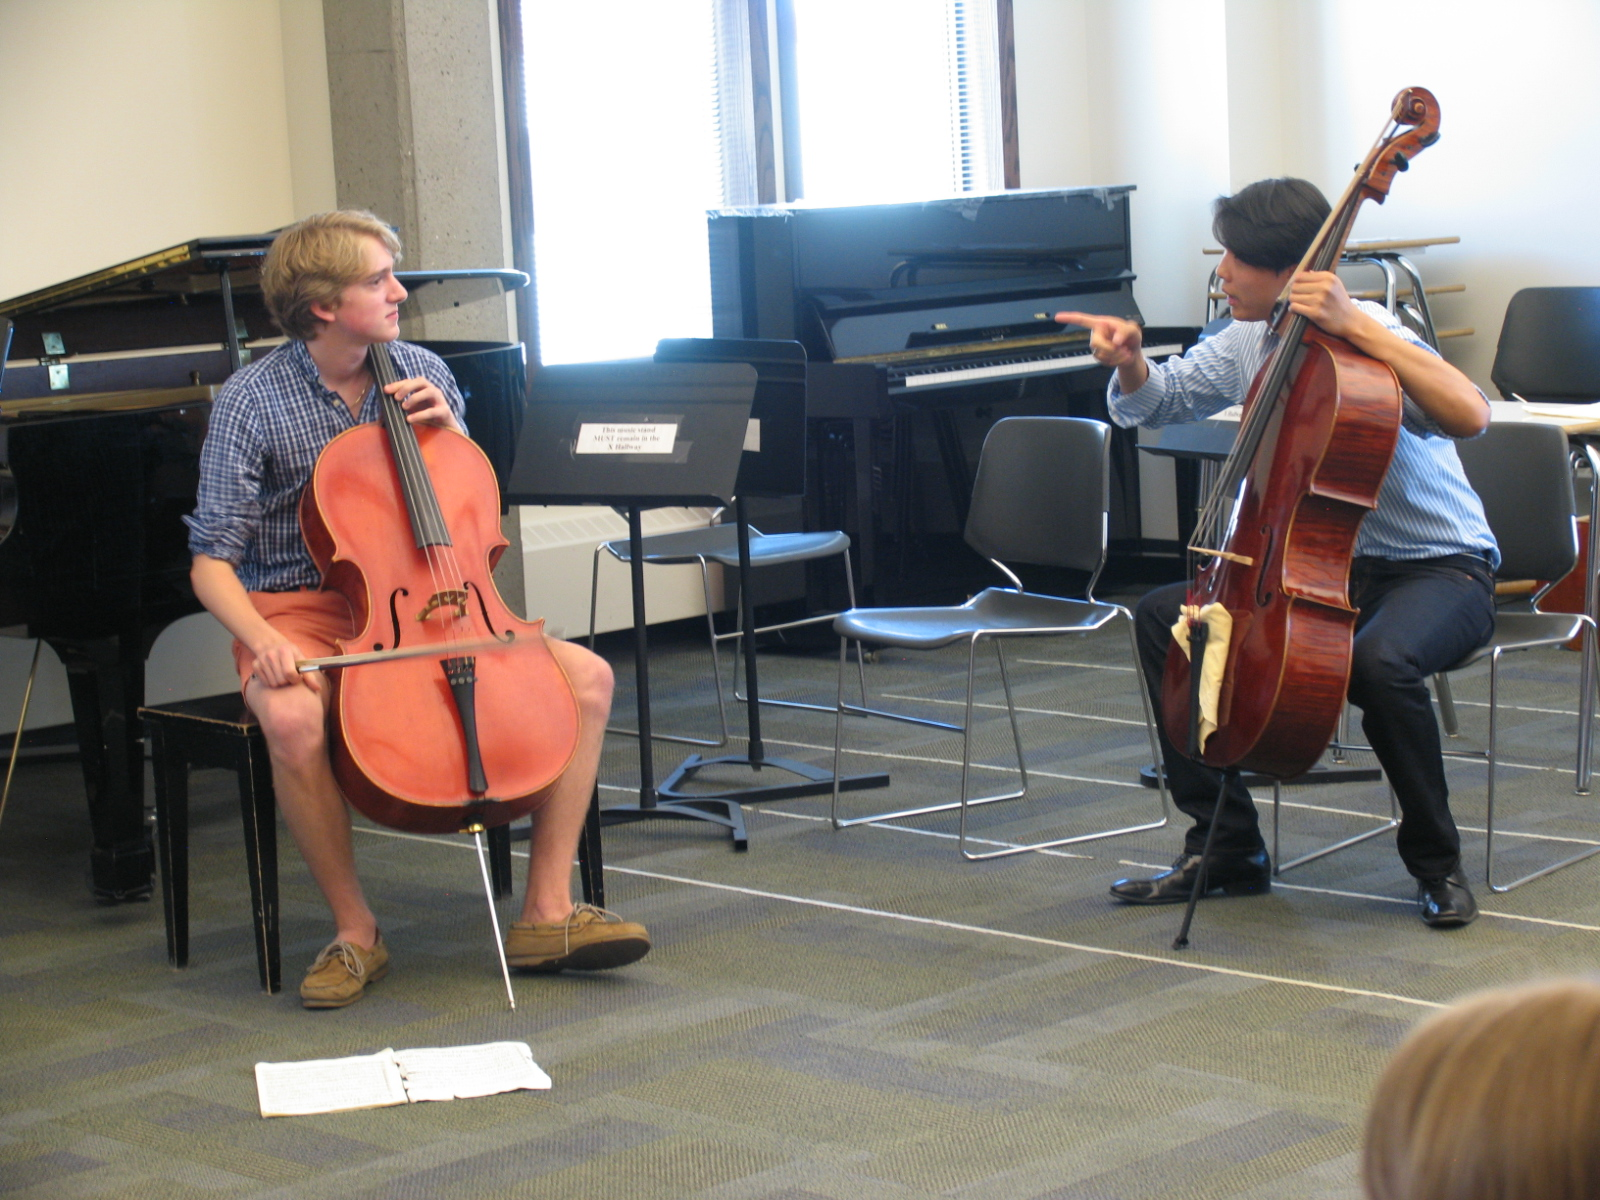 Canadian cellist Tate learning from MMB alumnus and New York Philharmonic cellist Wei Yu.